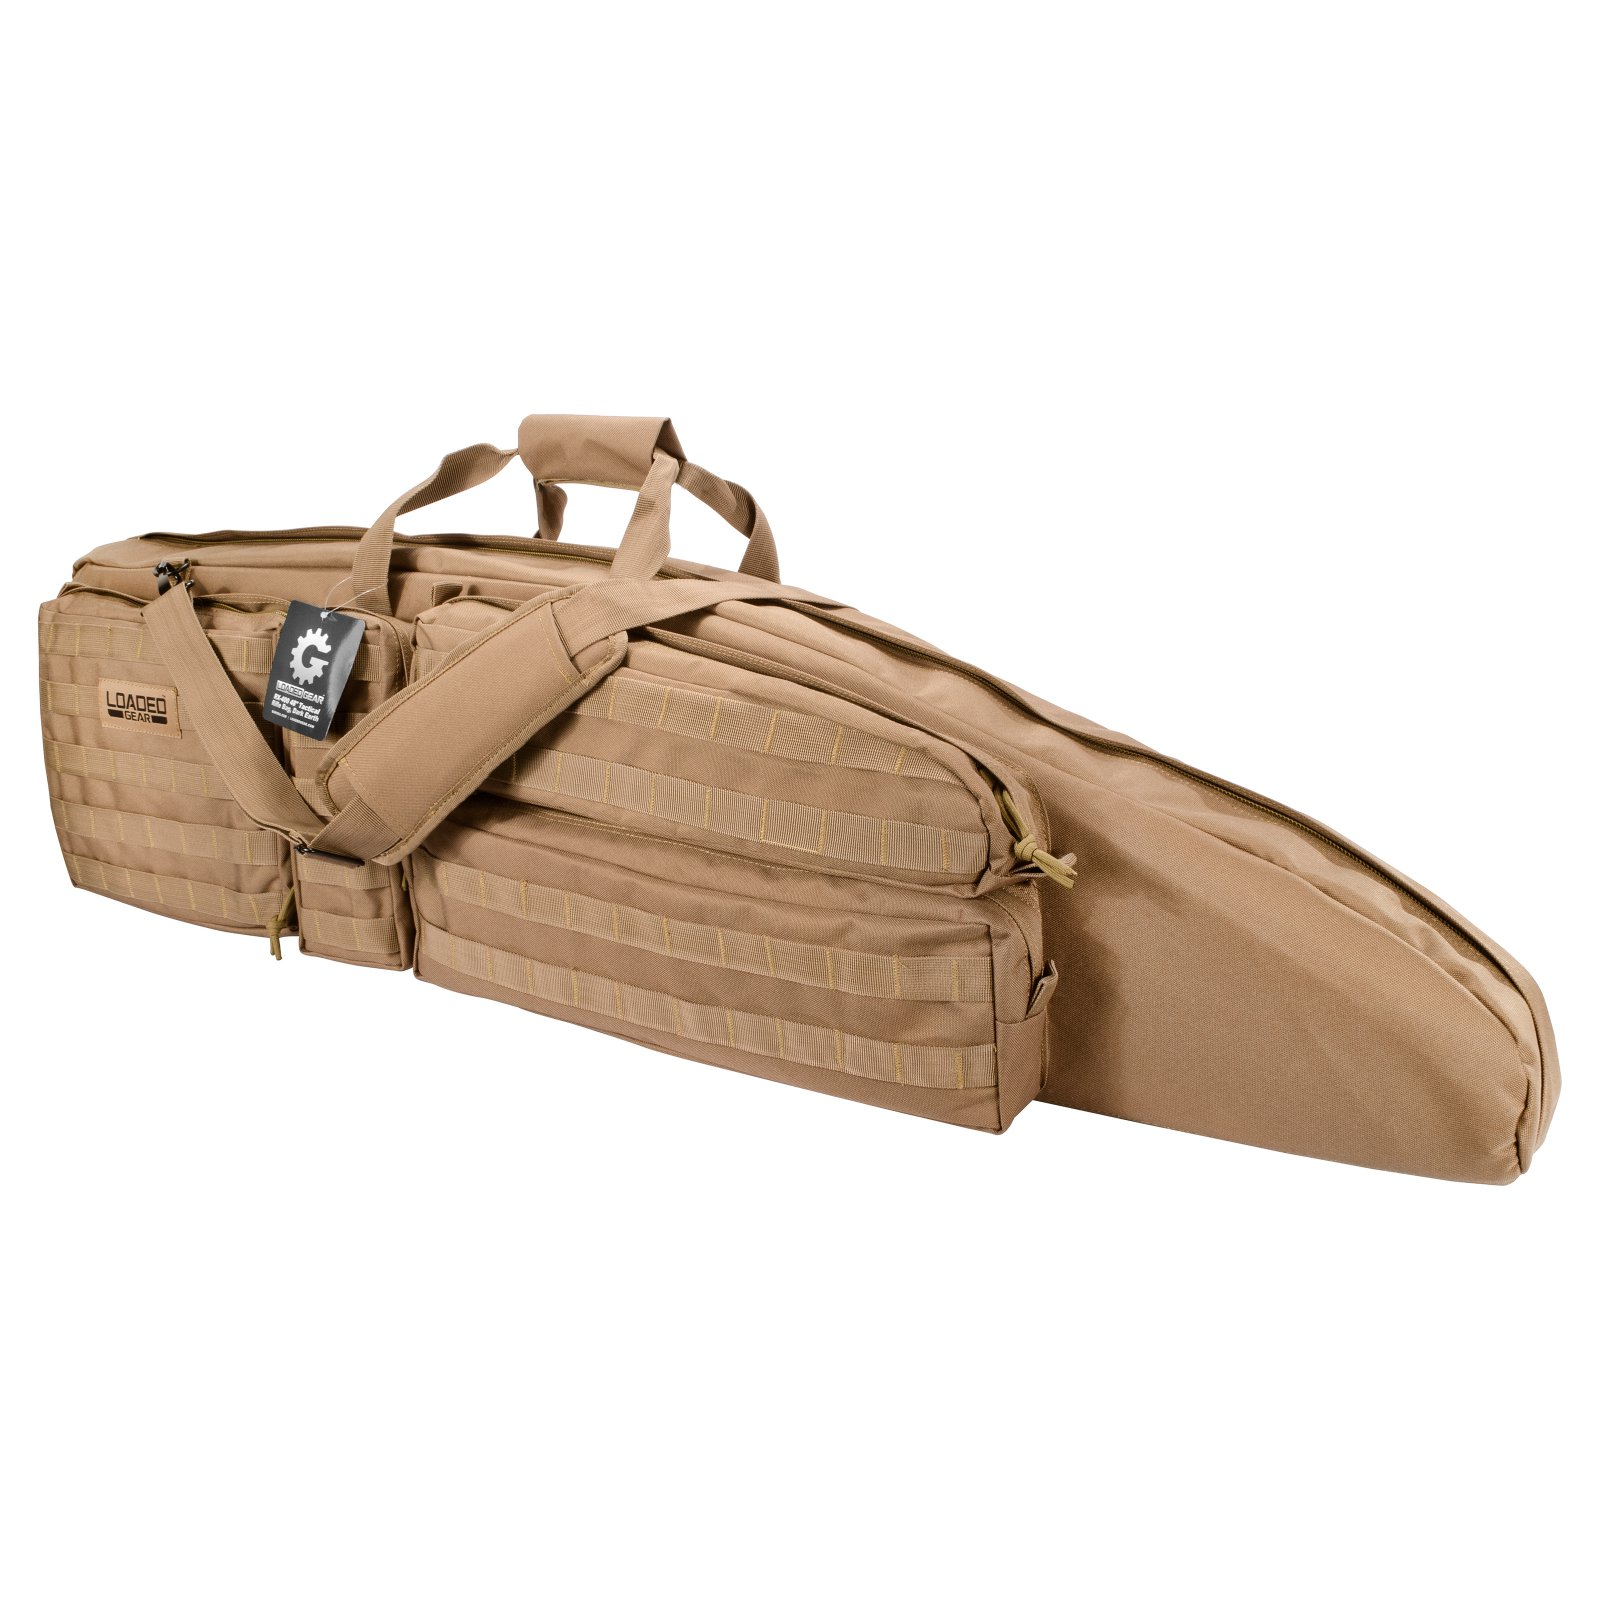 "Barska Optics Loaded Gear RX-400 48"" Tactical Rifle Bag, Tan"